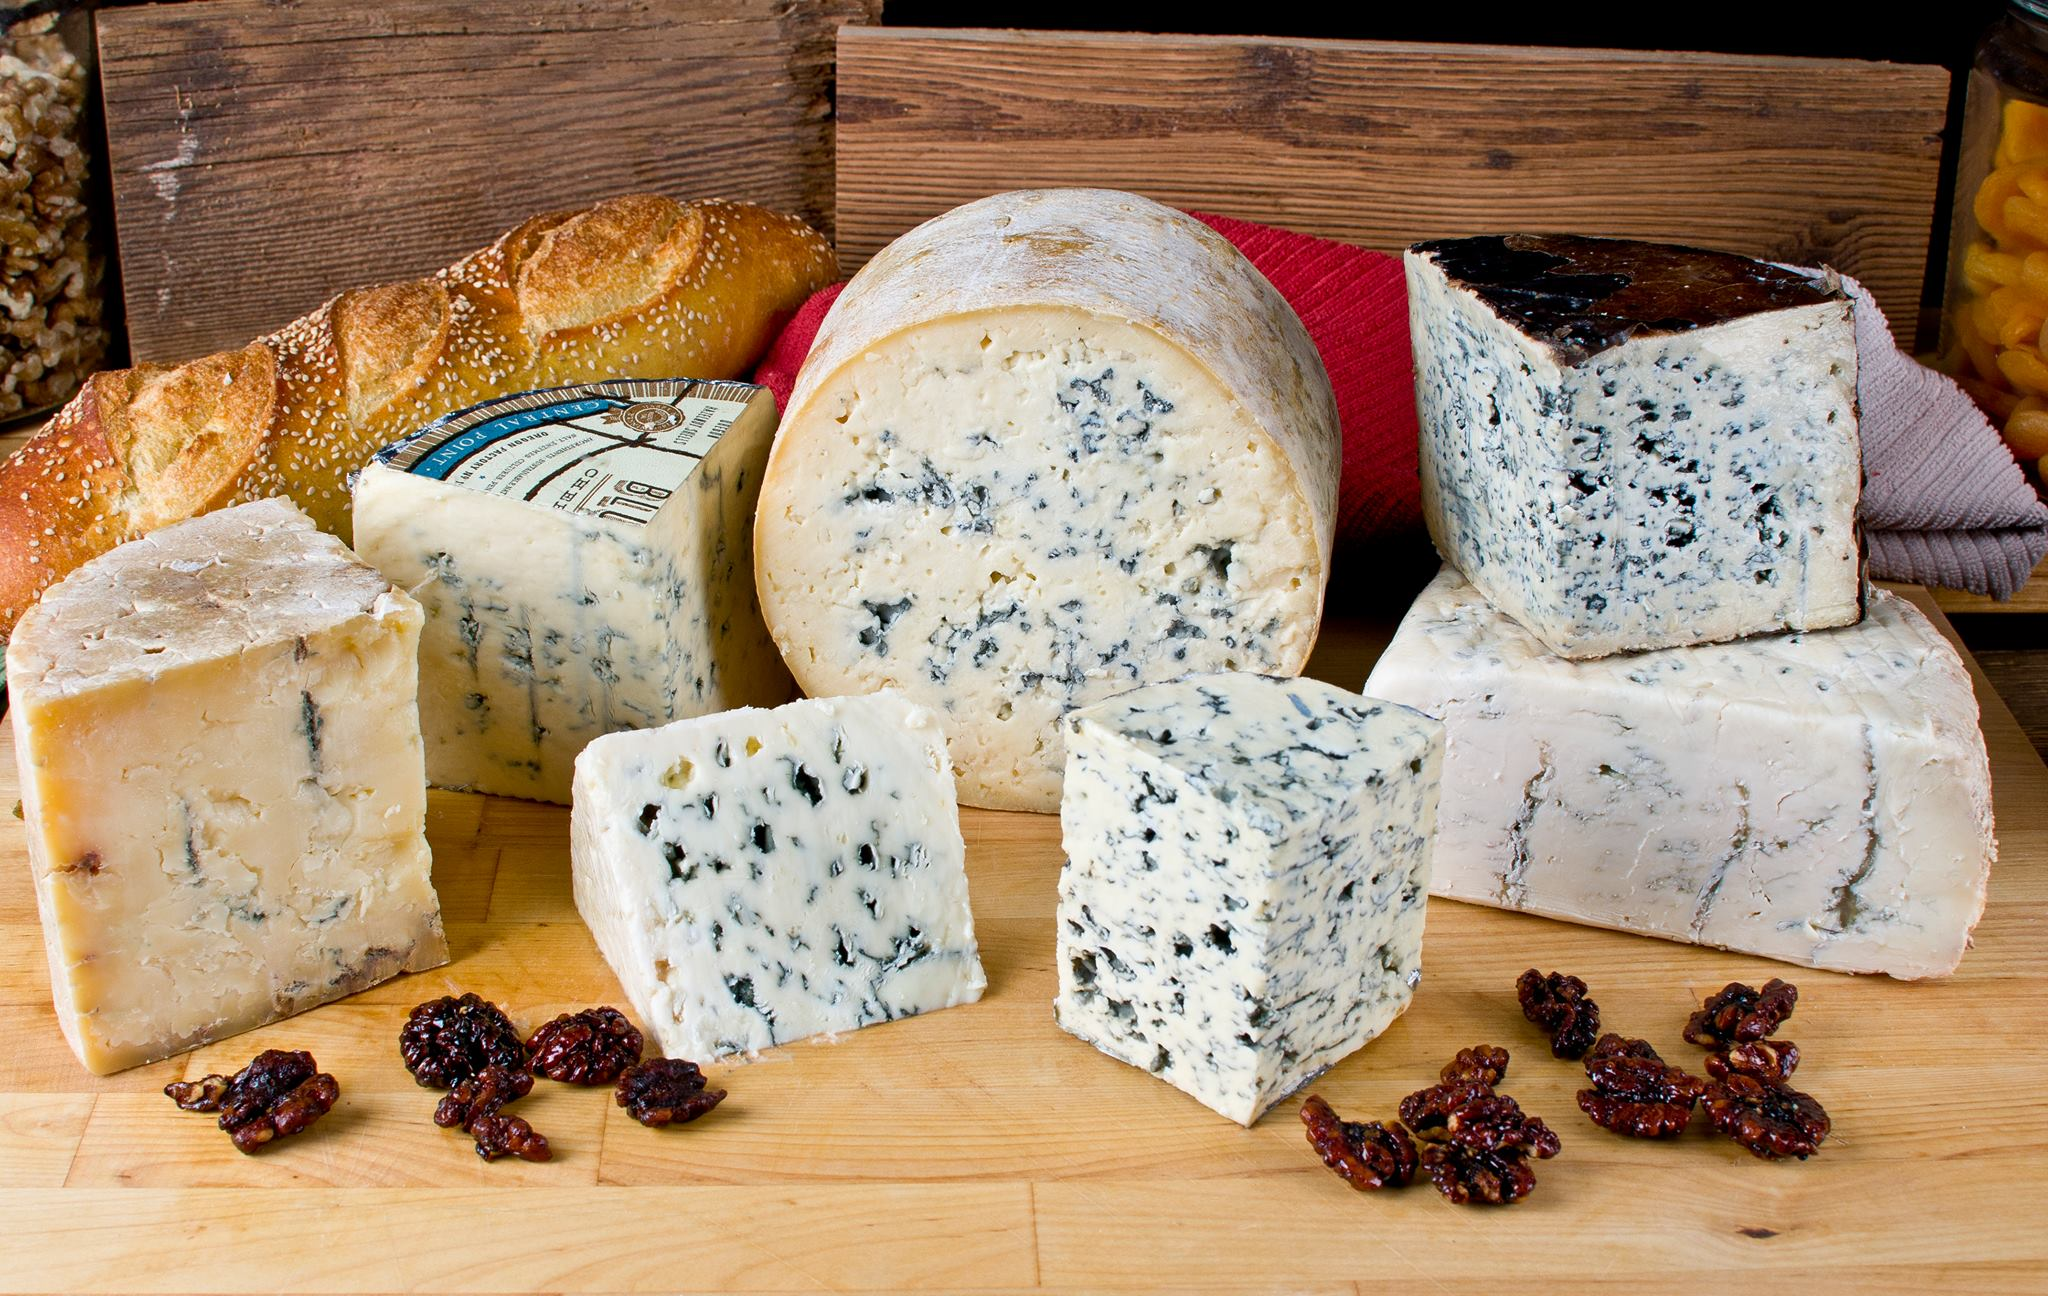 20% OFF an Exclusive Cheese Platter at Cheese Cave